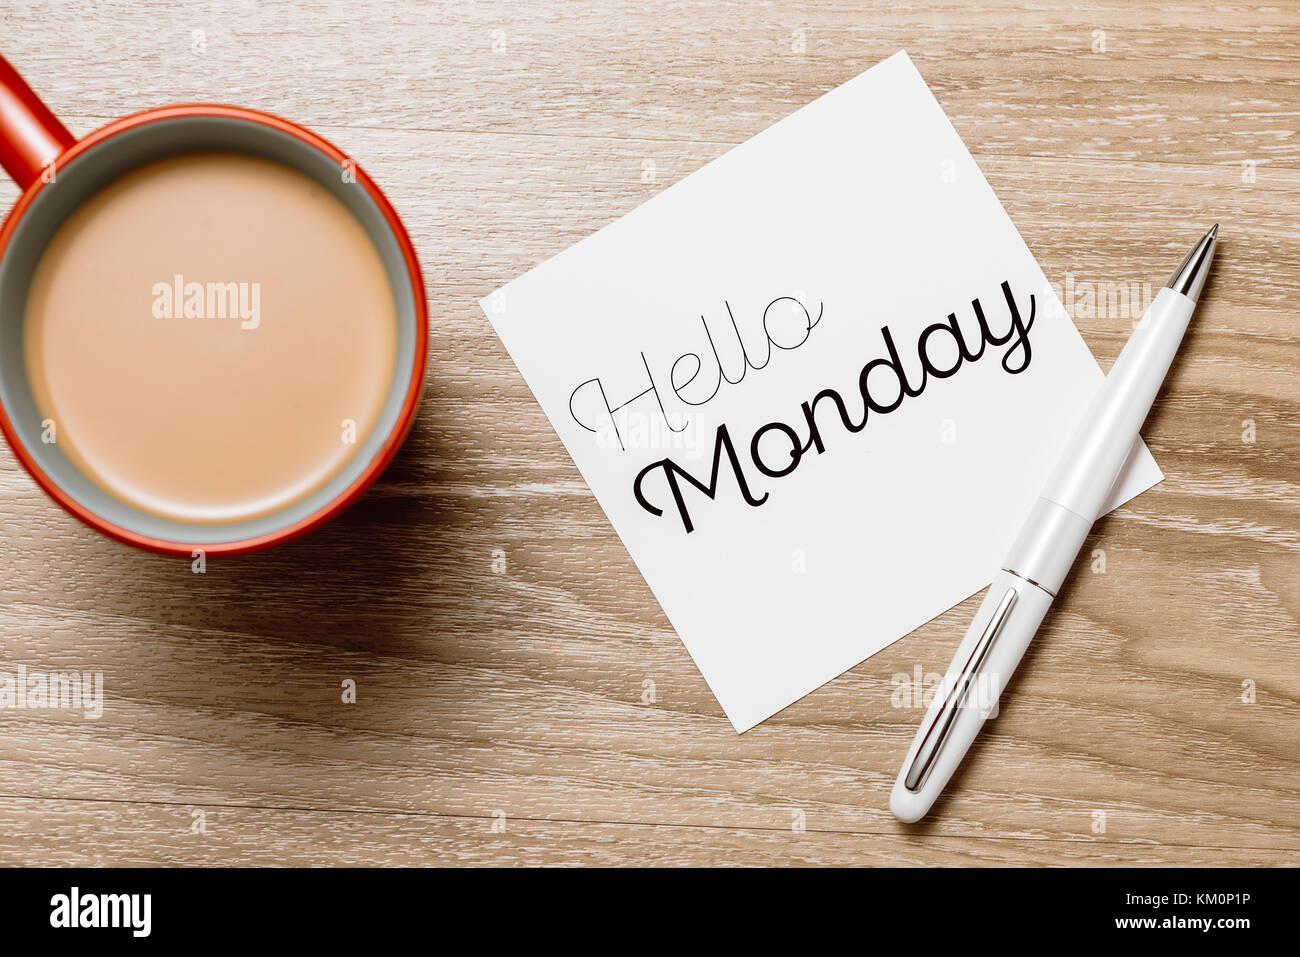 Good morning Monday - cheerful message on a sticky note with a cup of coffee and pen - Stock Image